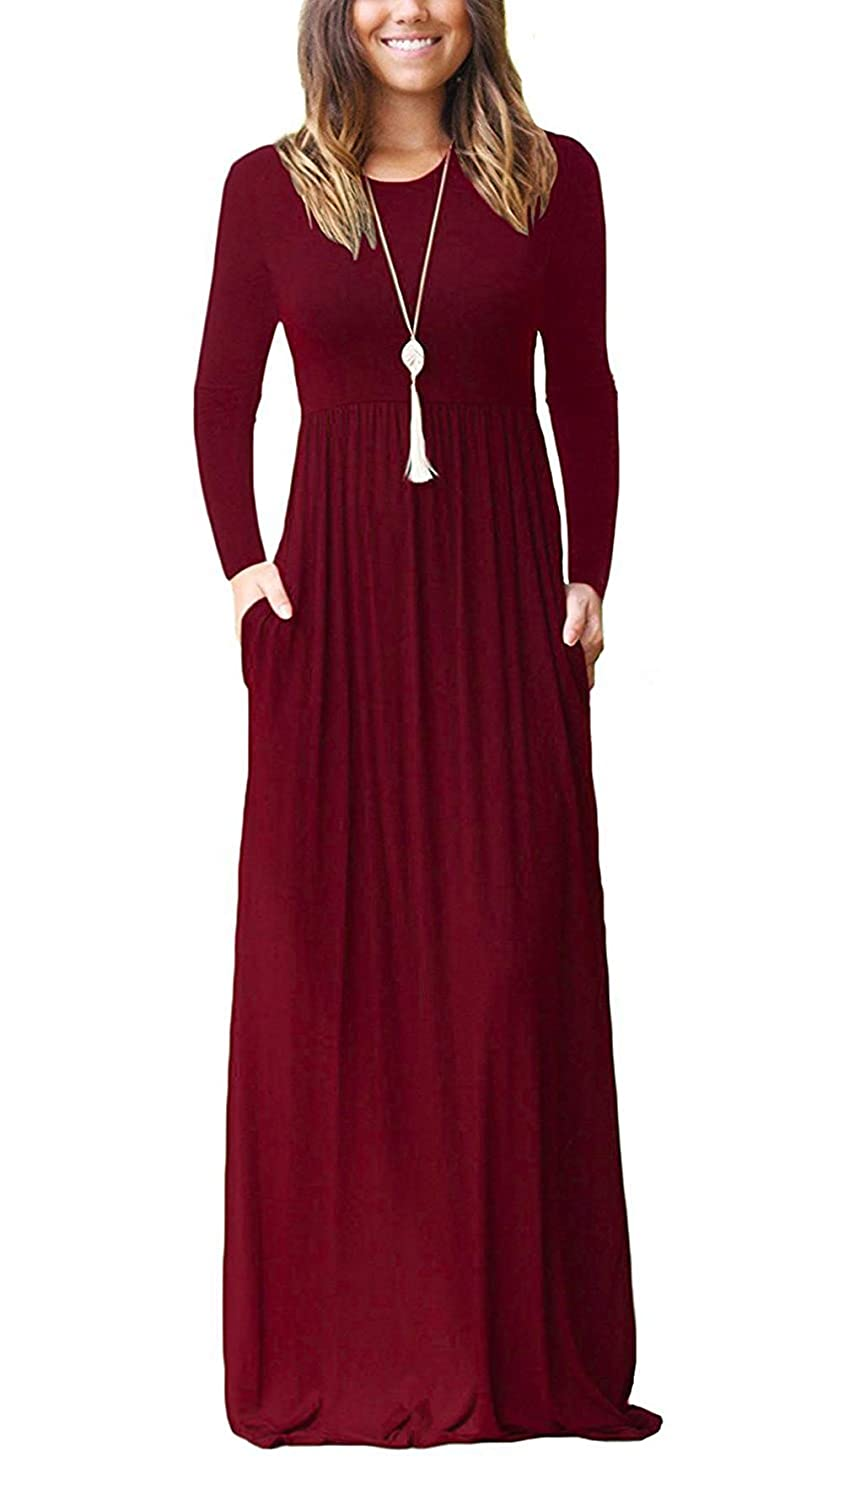 Freemale Womens Long Sleeve Crewneck Plain Casual Dress Long Maxi Dresses with Pockets